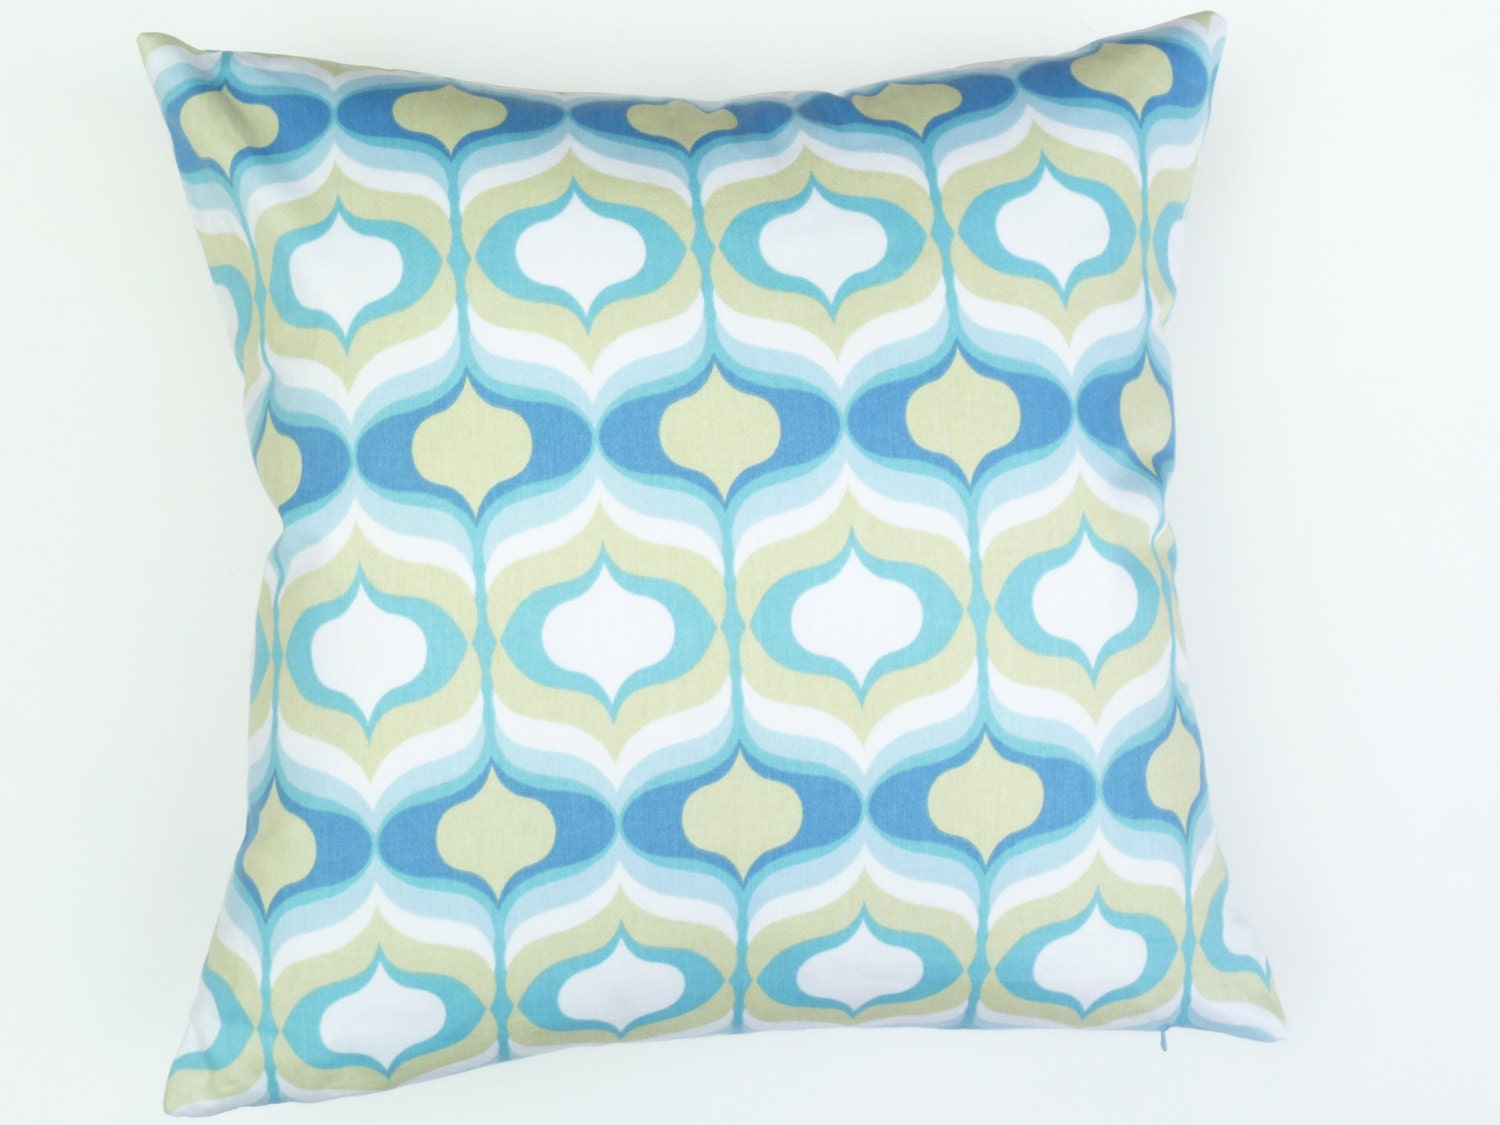 True Modern Pillows : Mid Century Modern style Accent Pillow 17 x 17 by MaiaModern